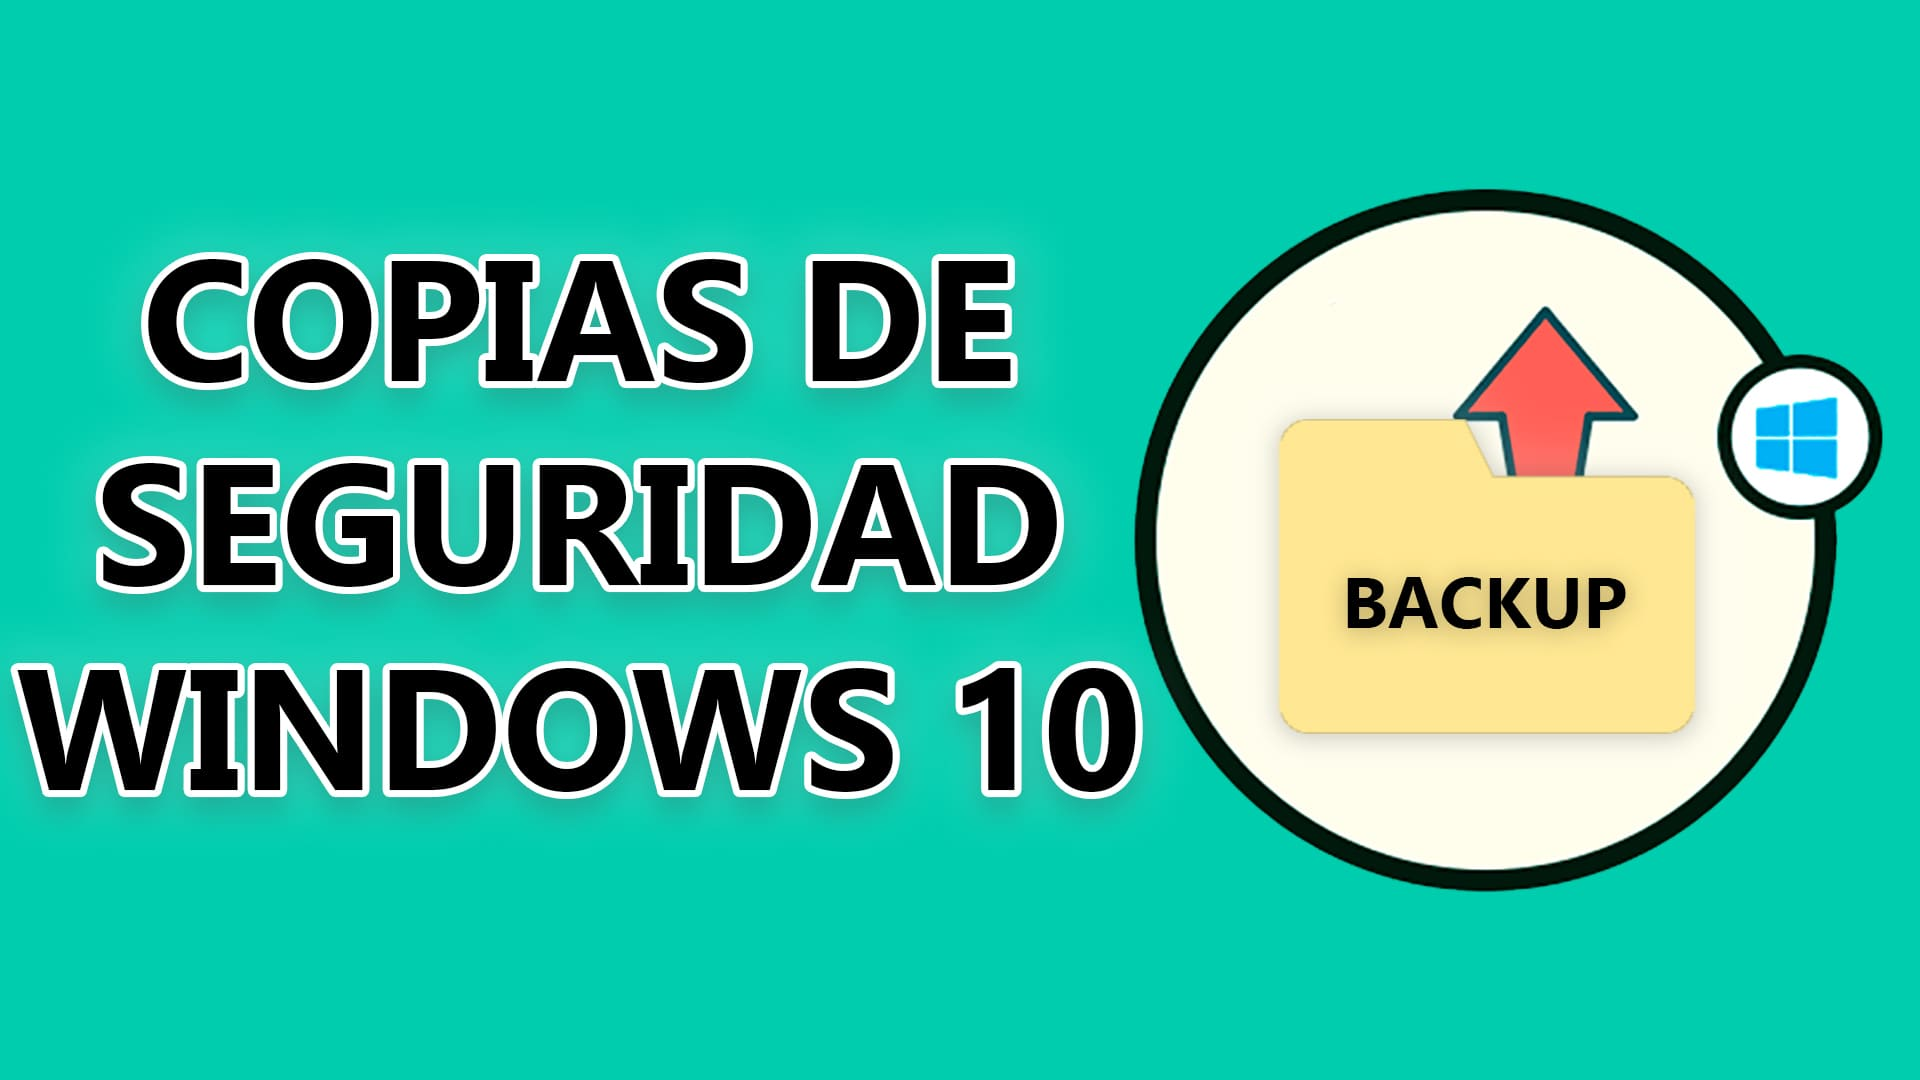 copias seguridad windows 10